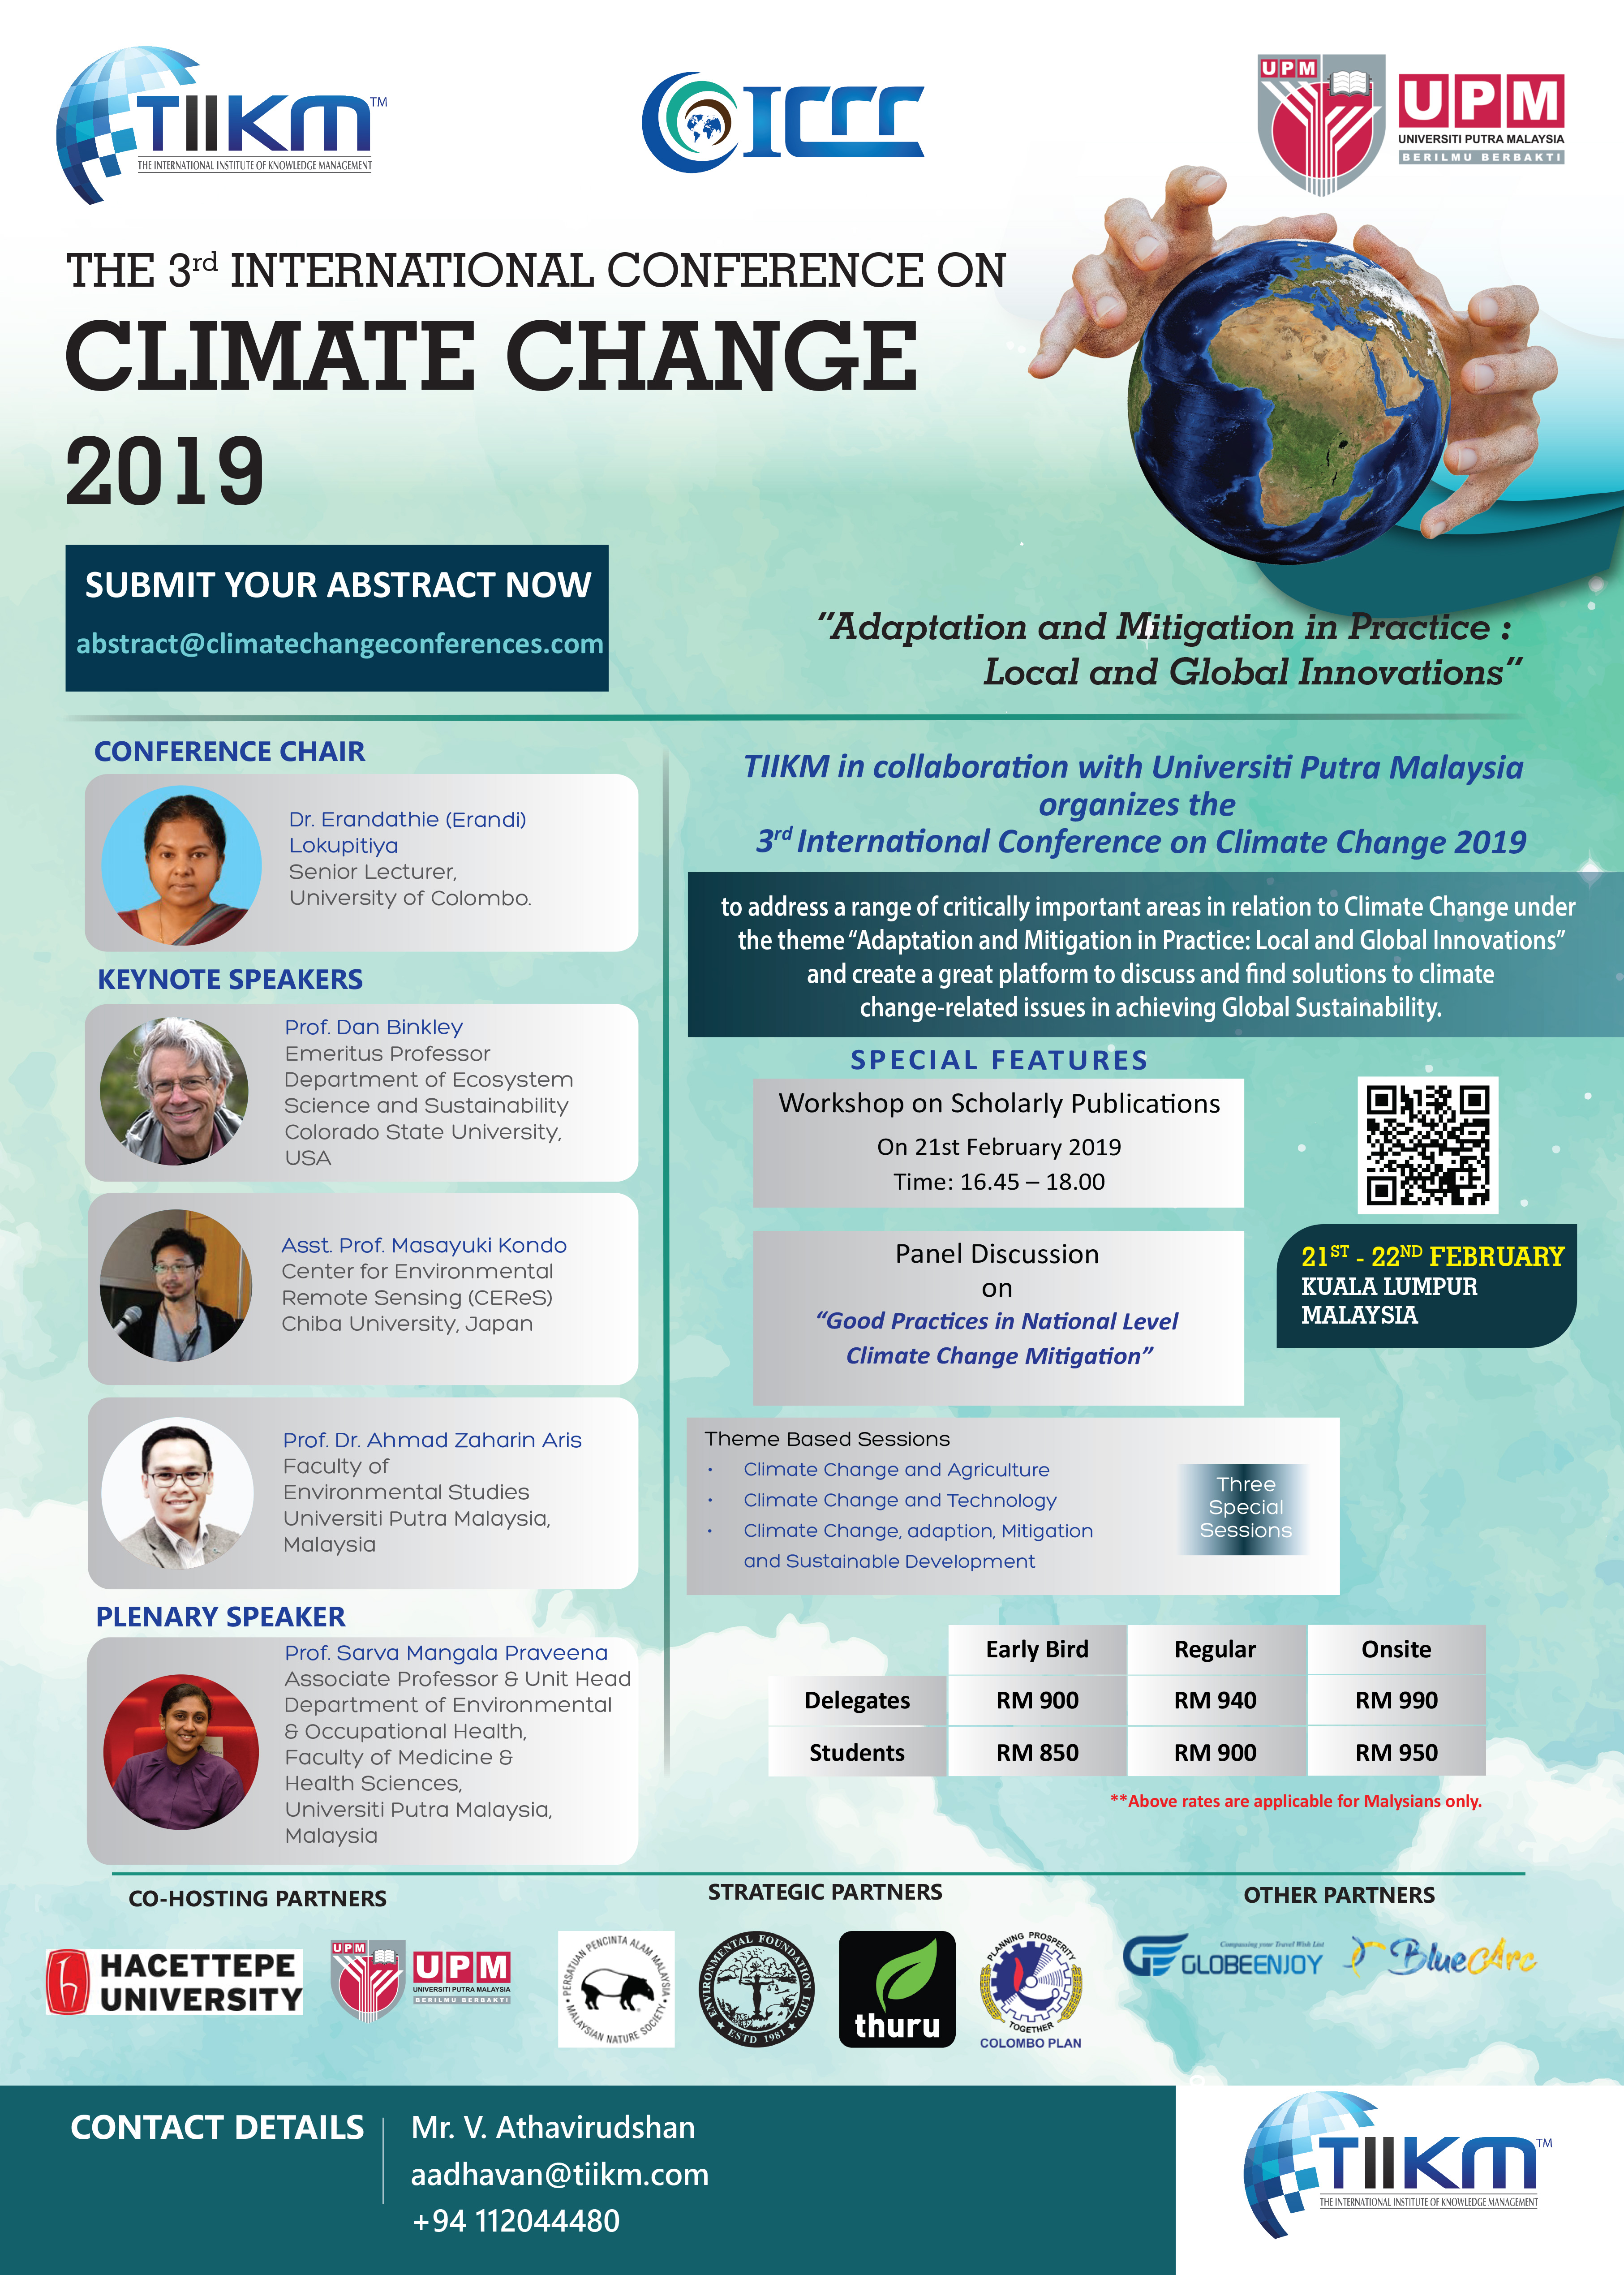 CALL FOR PAPERS 3rd International Conference on Climate Change 2019 (ICCC 2019)